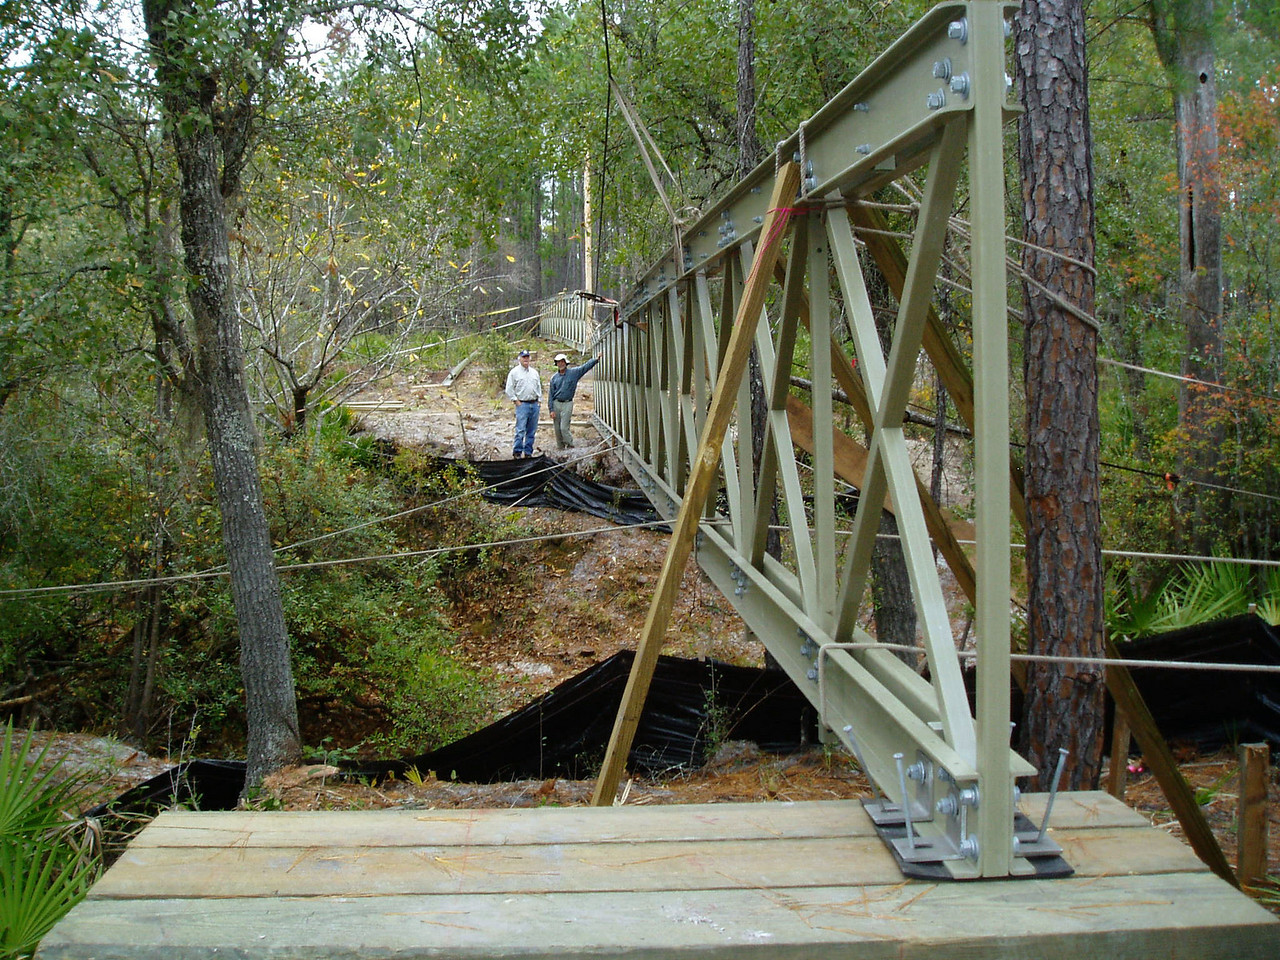 The Monkey Creek Bridge under construction, as seen from the south shore.      PHOTO CREDIT:  Kent Wimmer / Florida Trail Association